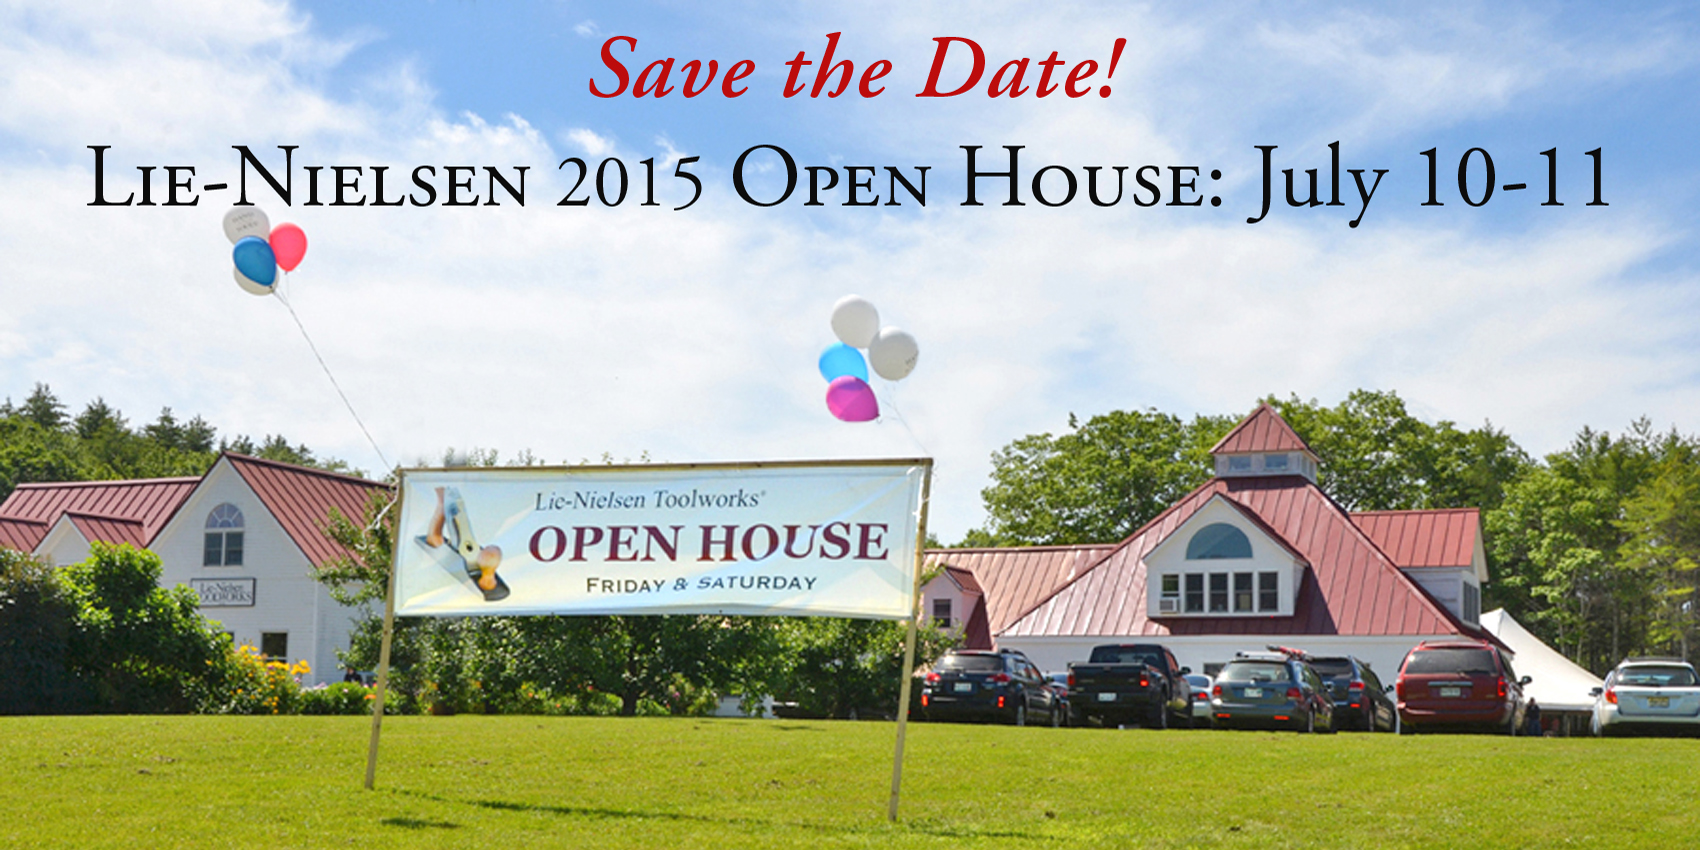 Lie-Nielsen 2015 Open House